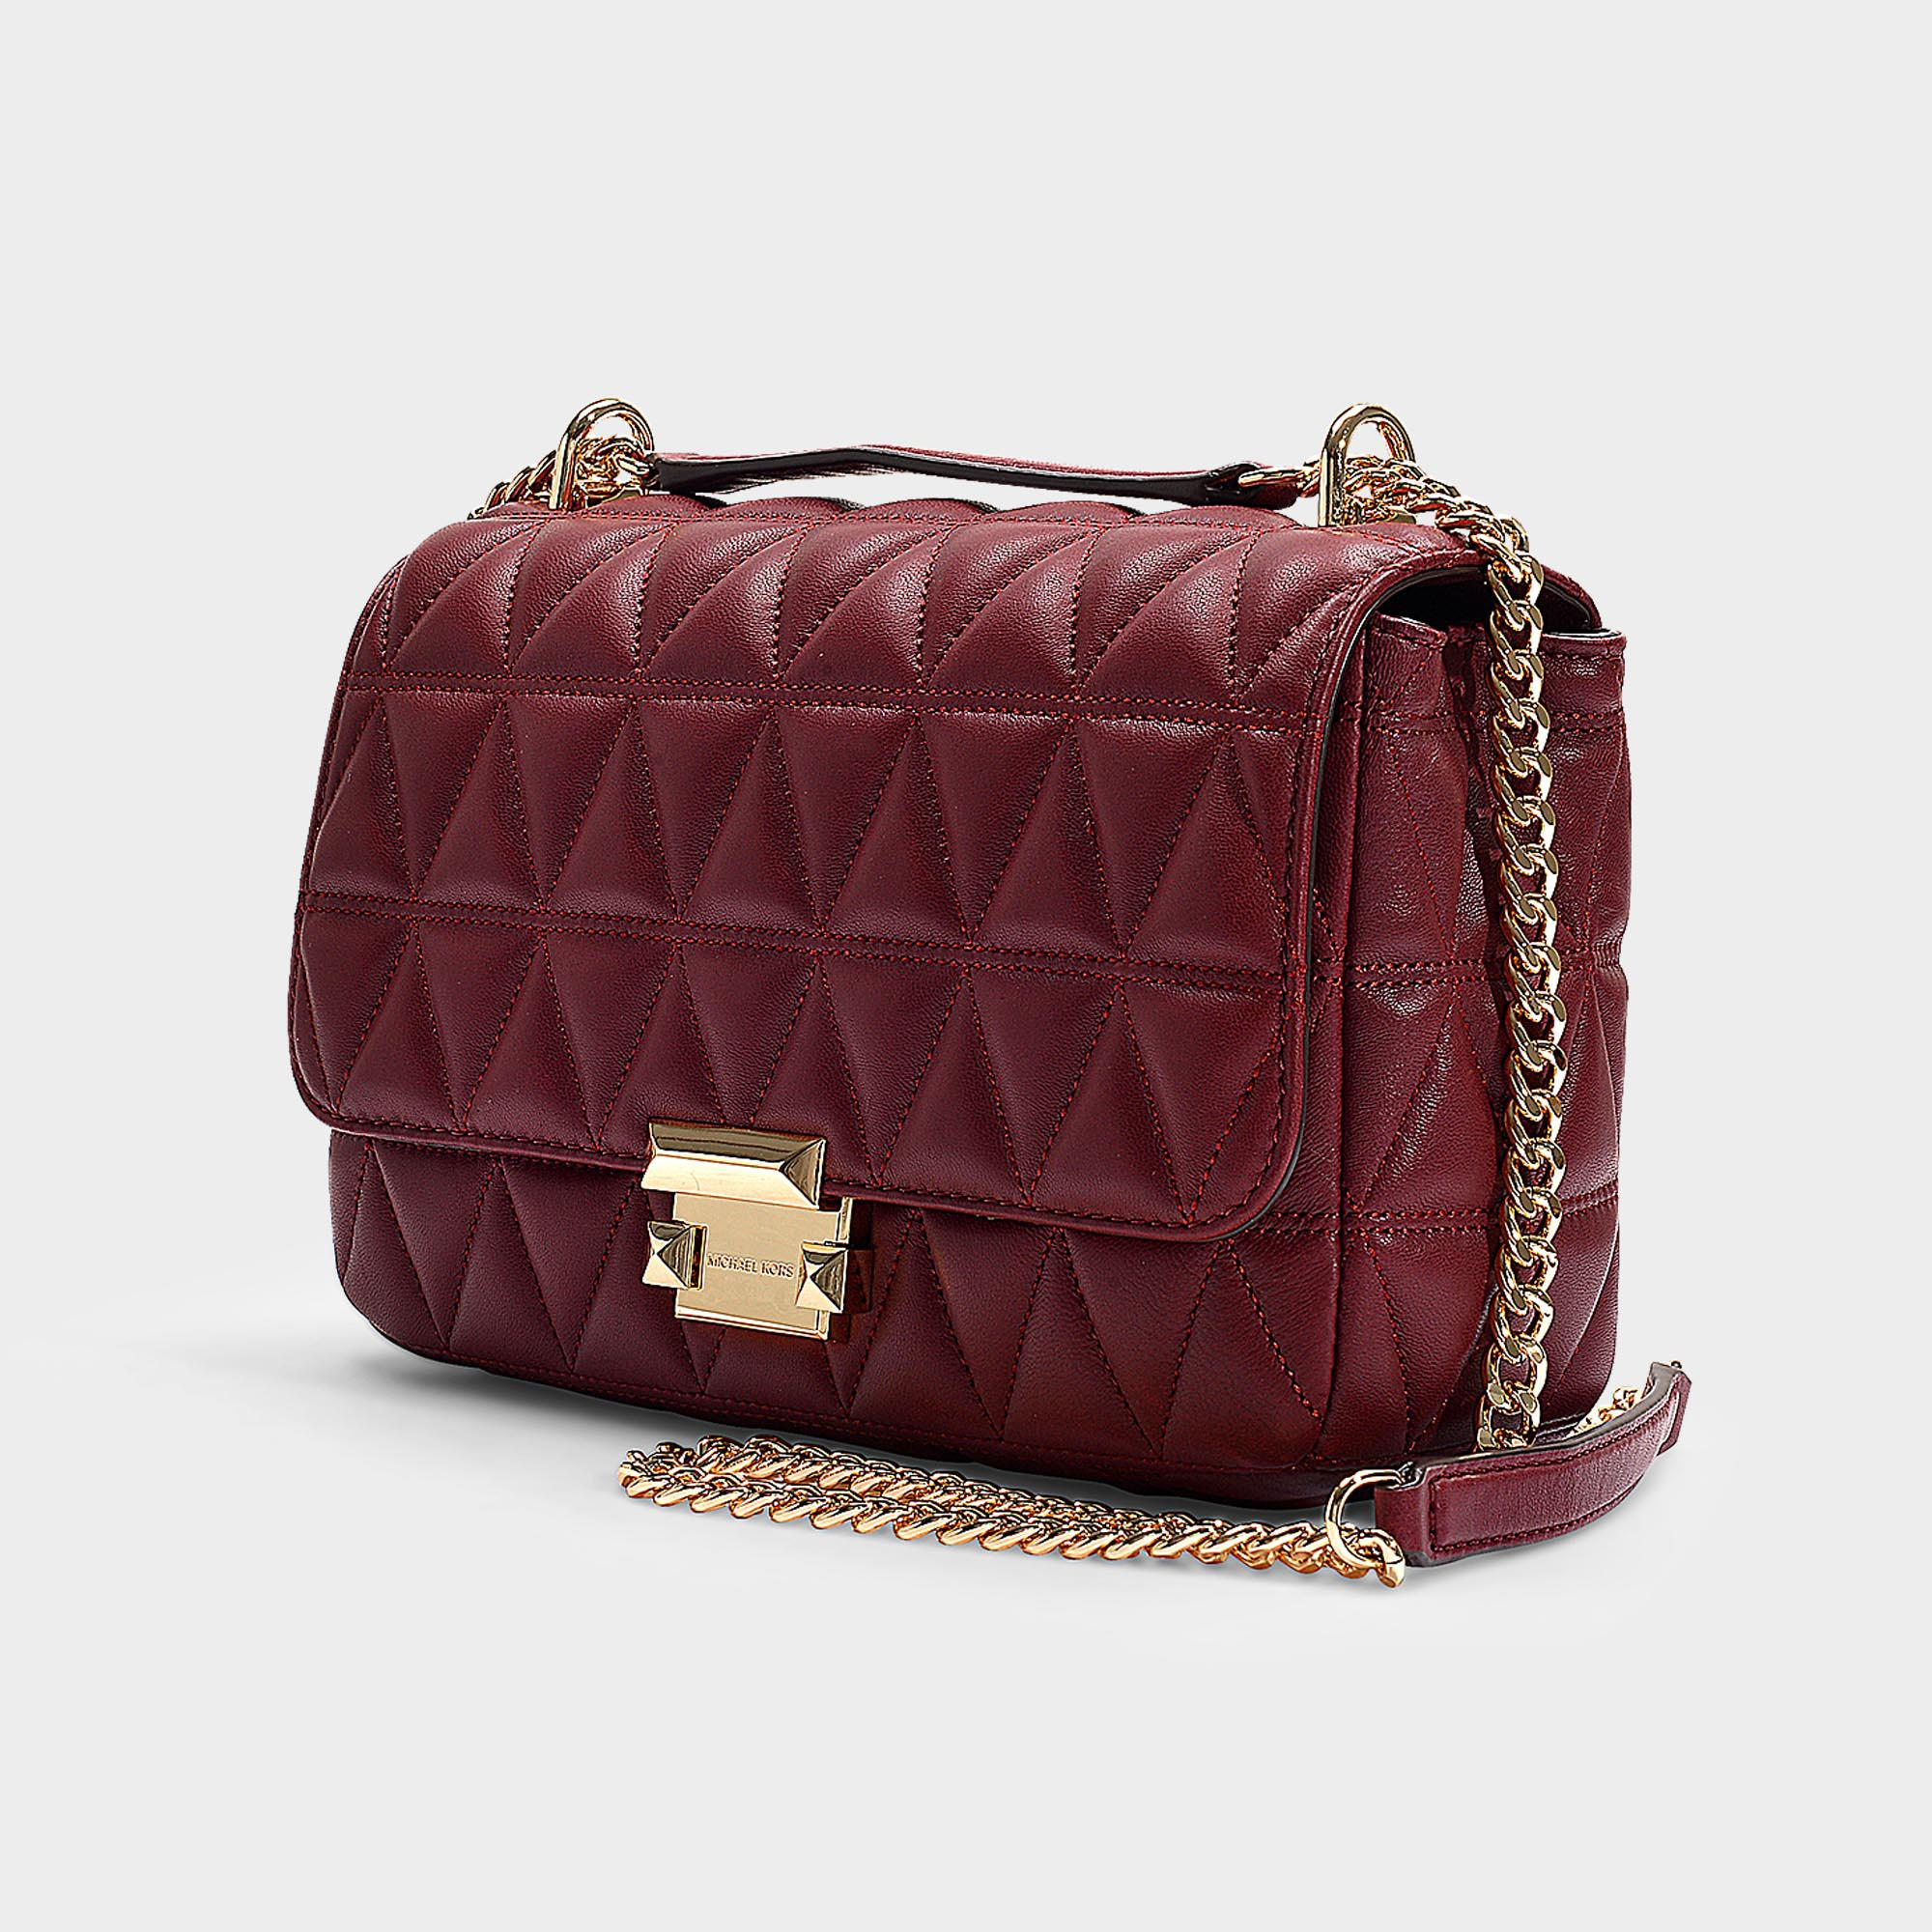 fb6e4cb7e170e MICHAEL Michael Kors - Multicolor Sloan Large Chain Shoulder Bag In  Burgundy Quilted Lambskin - Lyst. View fullscreen